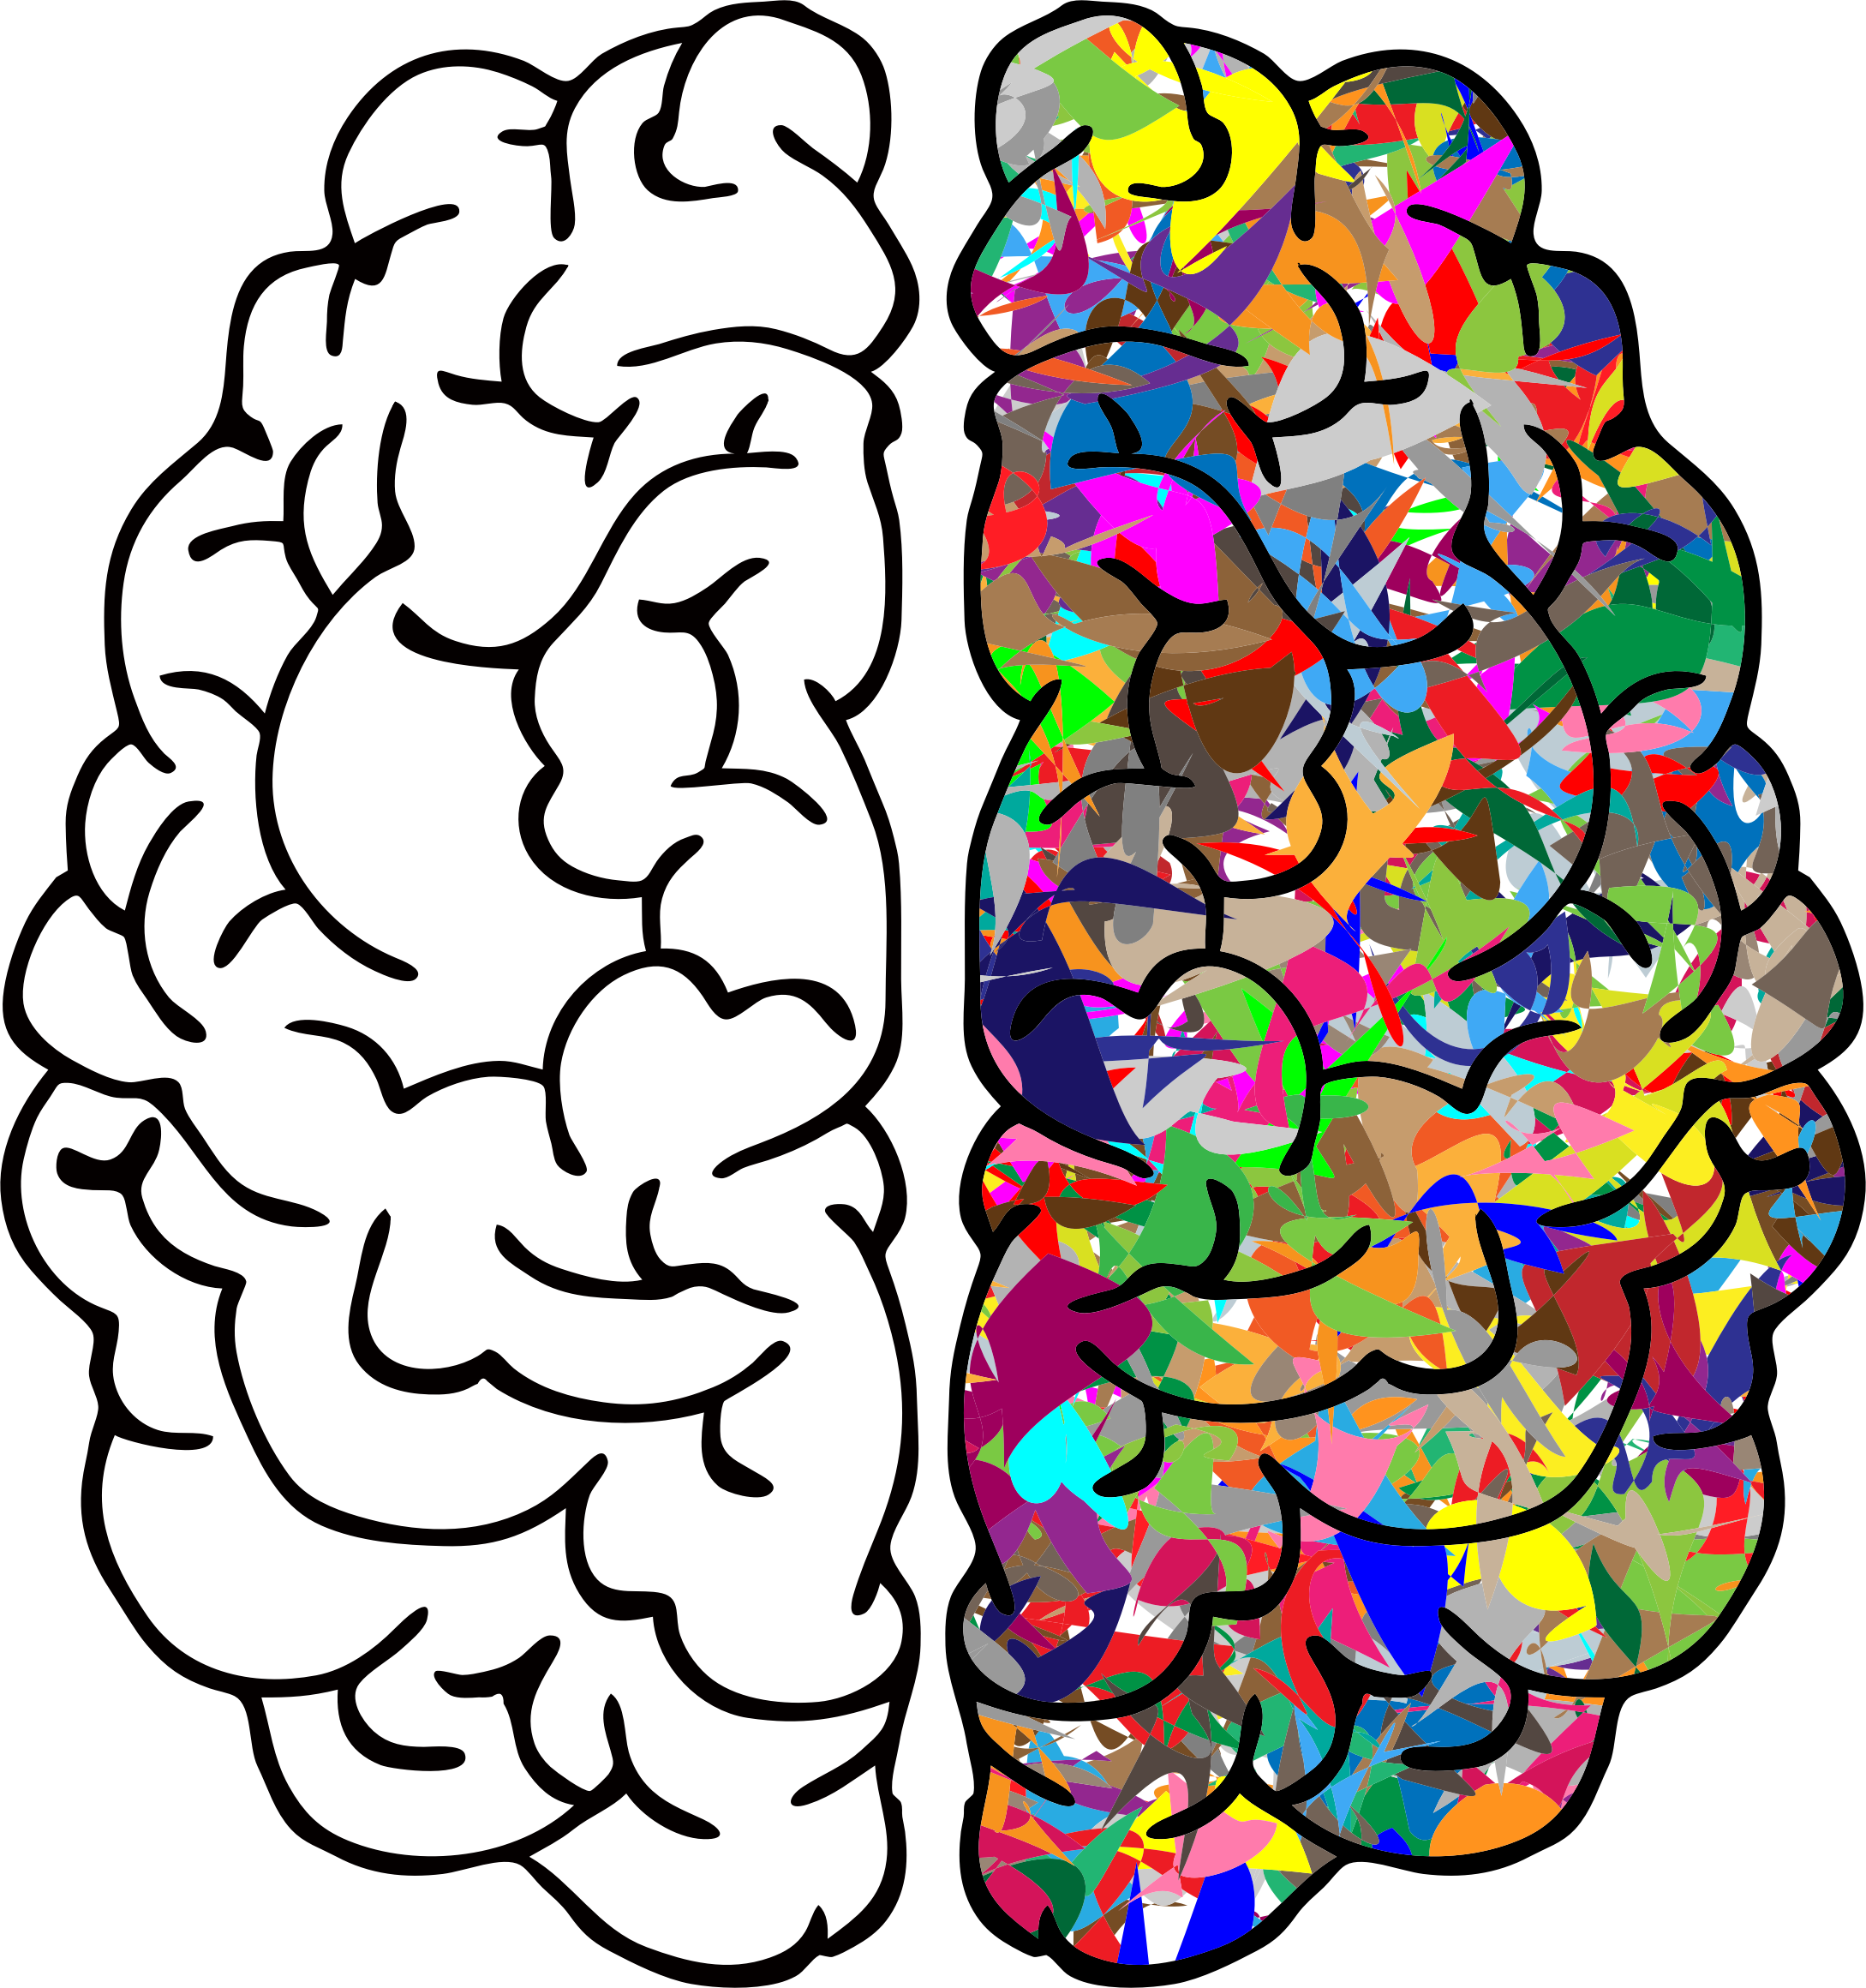 Clipart brain line art. Abstract prismatic big image